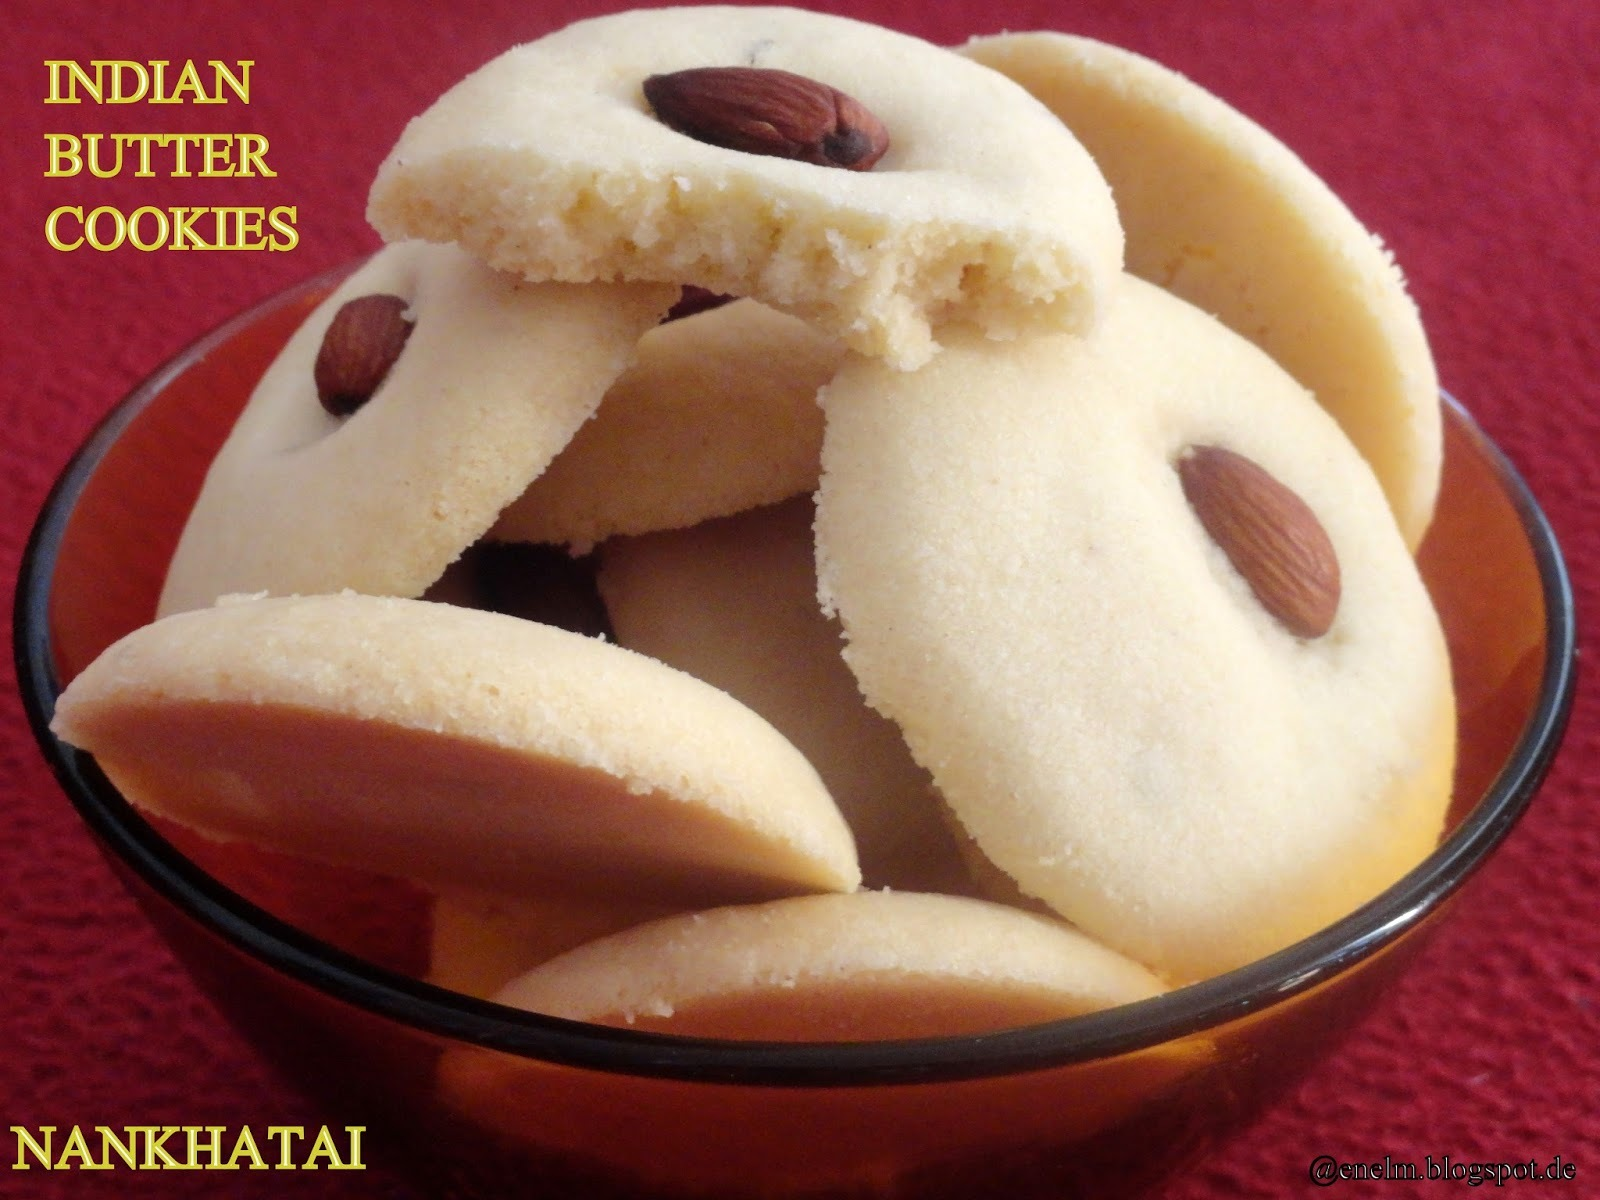 Indian Butter Cookies/Nankhatai